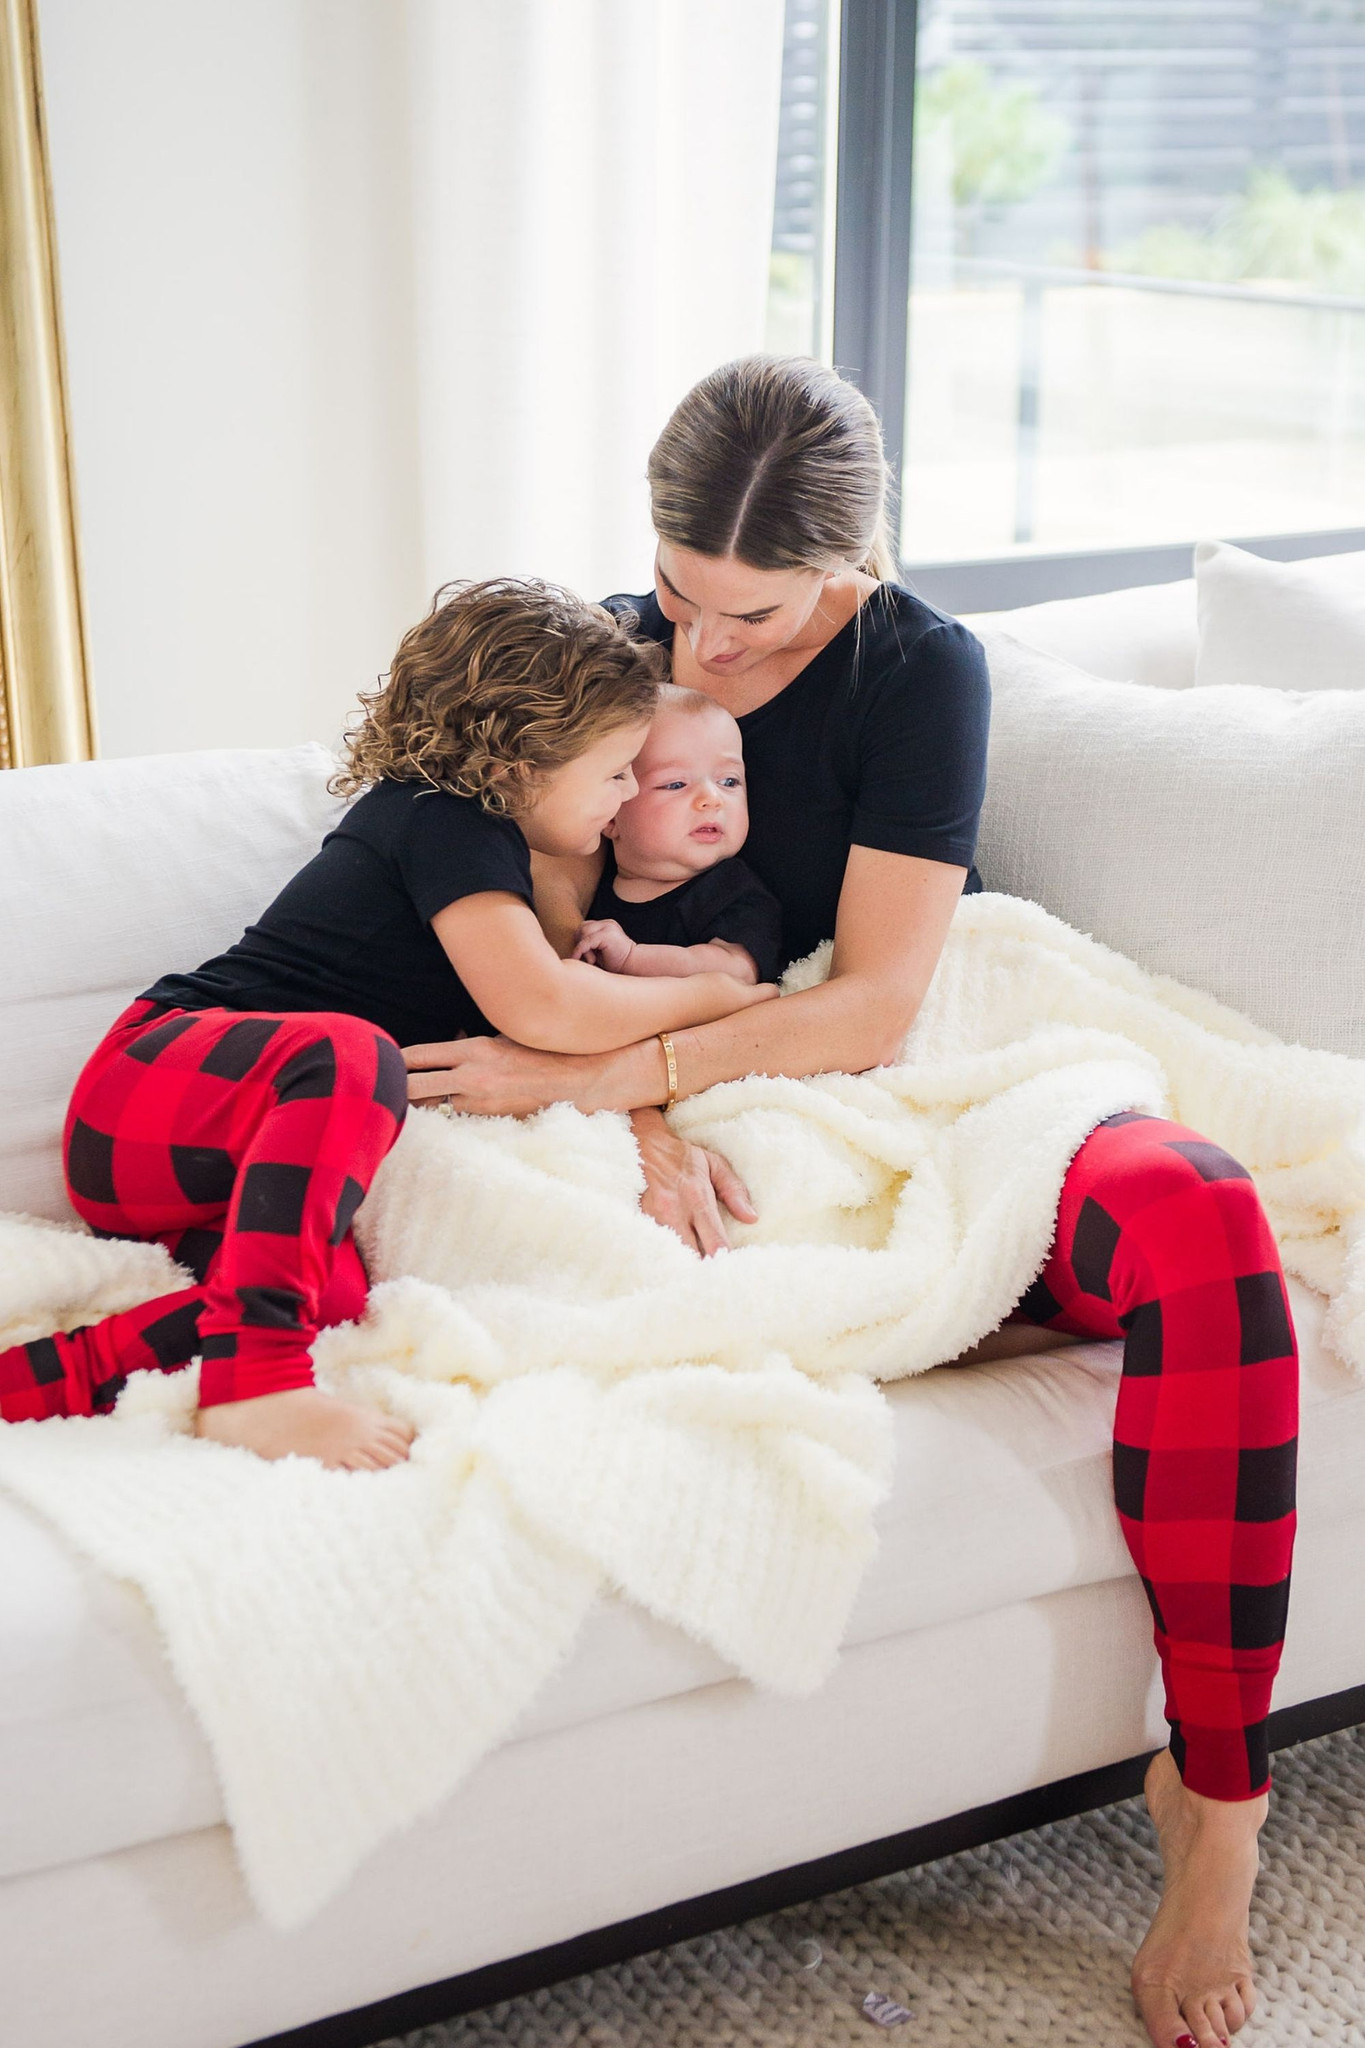 Cozy up in our exclusive lounge collection for the whole family. Made from our signature buttery french terry that you know and love, get your hands on these sets while you can! The perfect pants and t-shirt set for infants, toddlers, and kids to get festive in! 95% modal 5% spandex